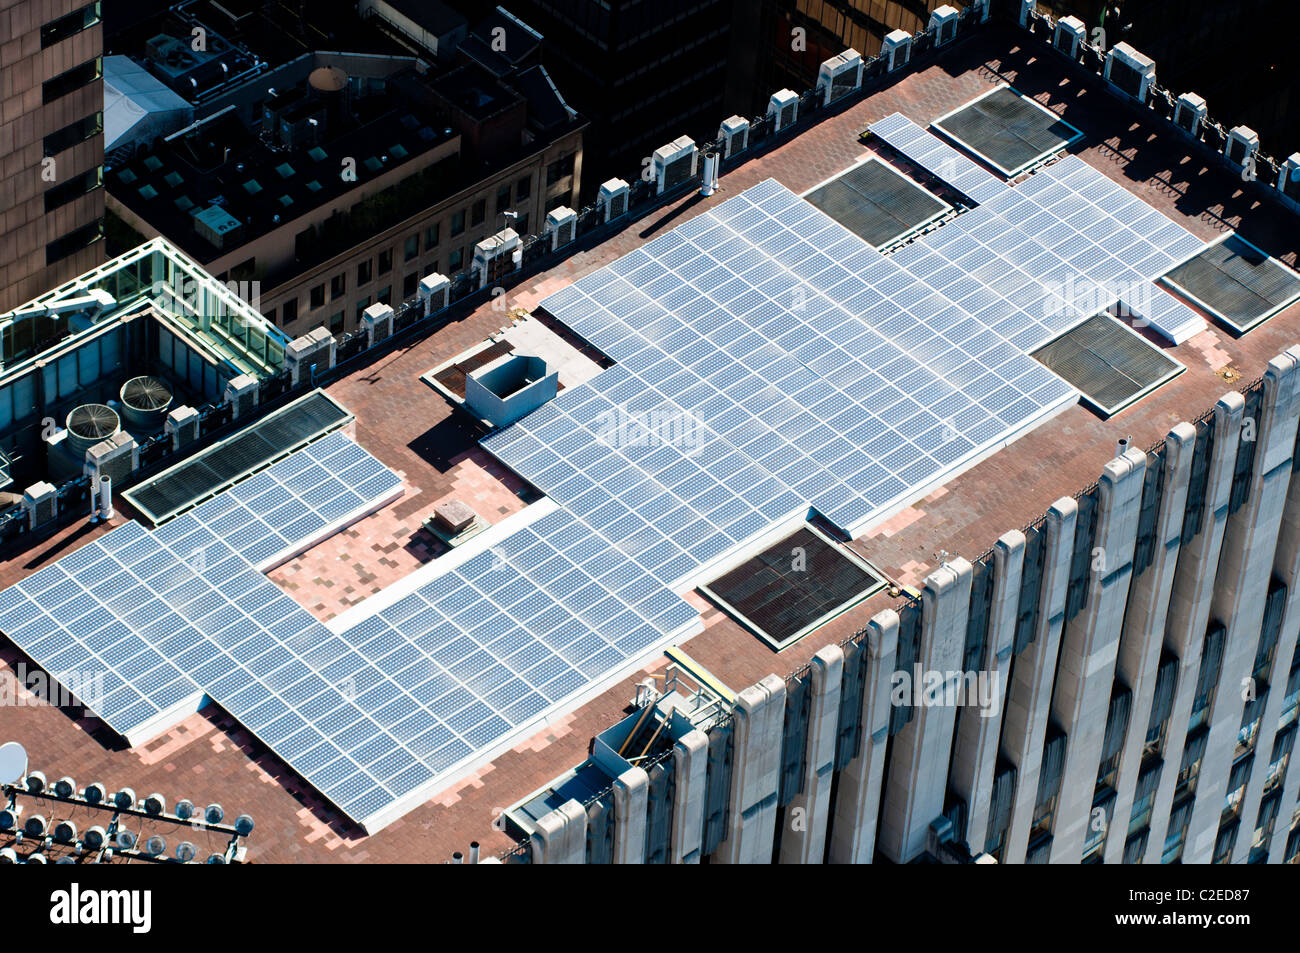 Aerial view of solar panels on the top of Manhattan building, New York City, USA, renewable energy, solar cell, - Stock Image